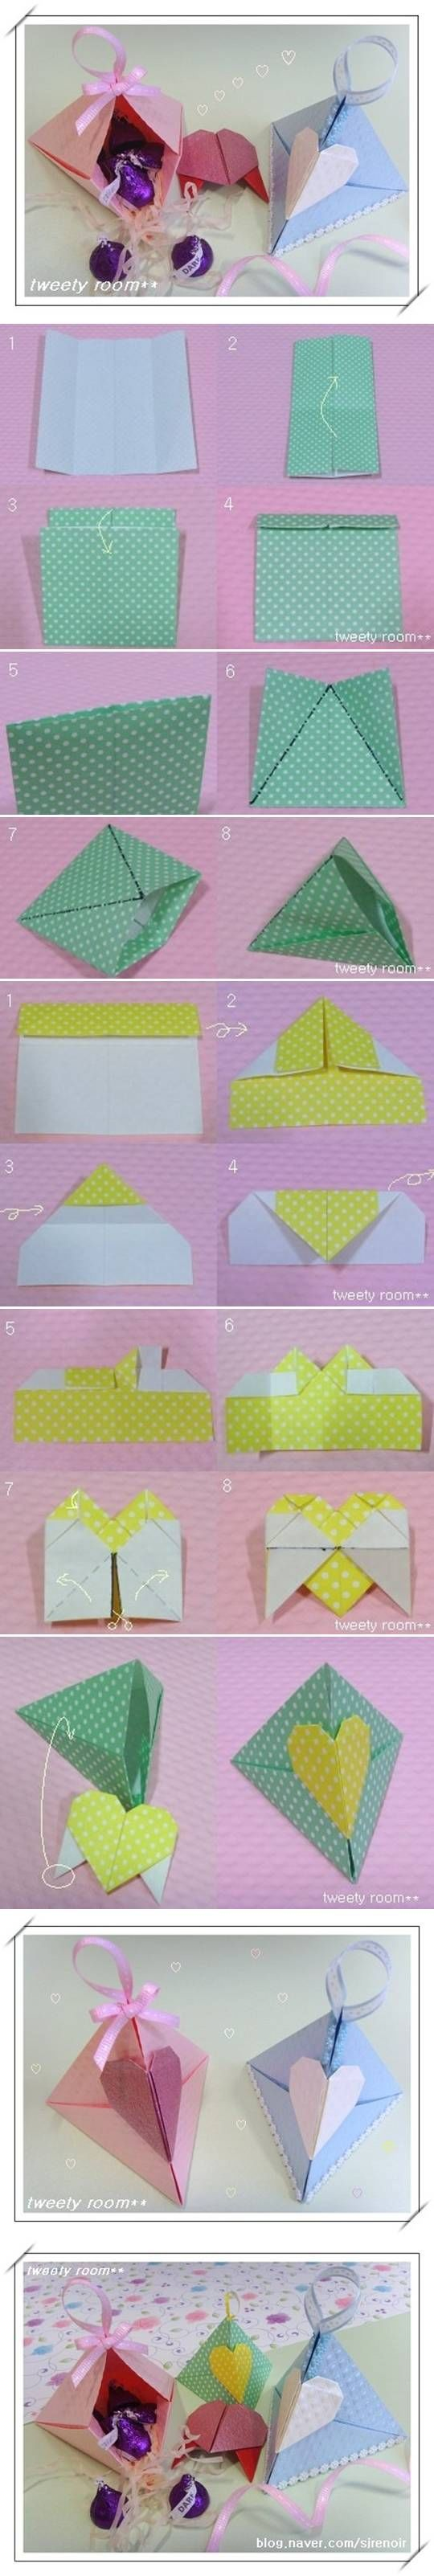 How to make a origami heart lock pictures photos and - How to make a paper heart box ...